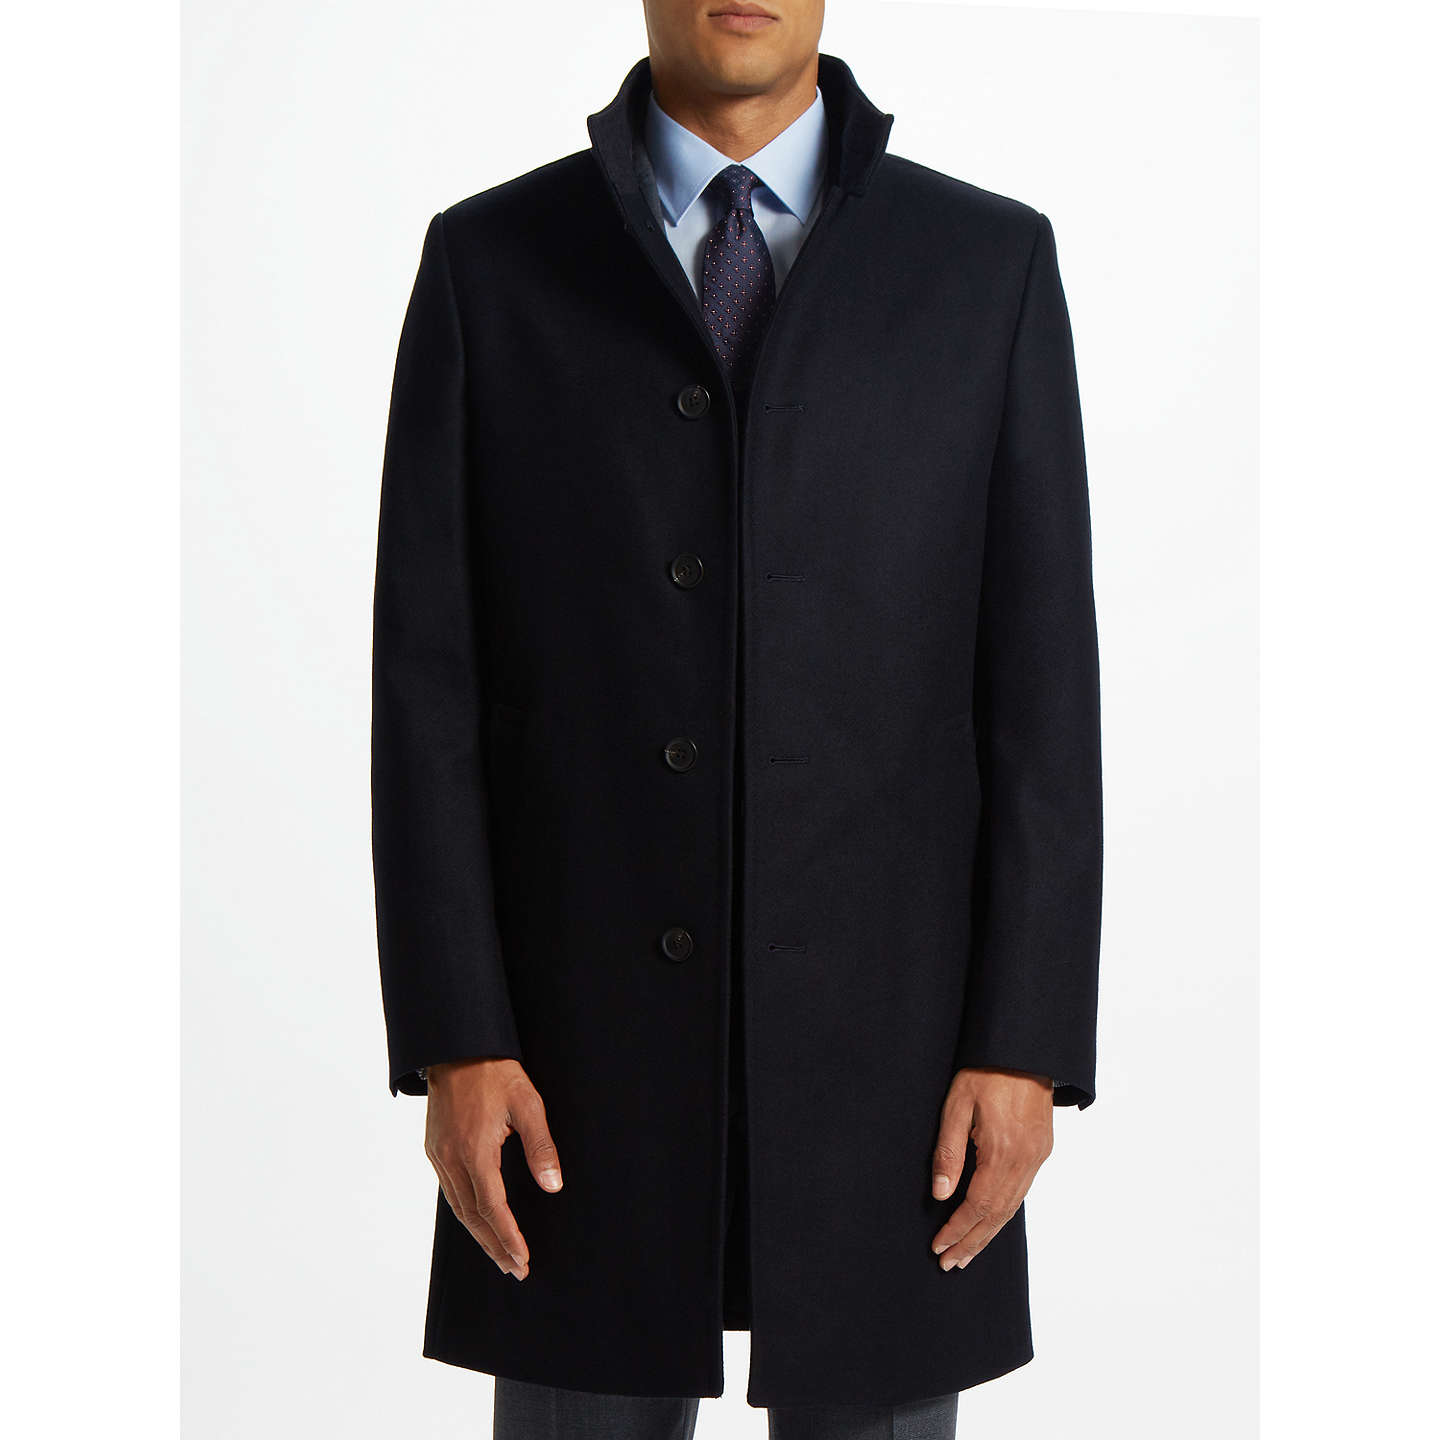 BuyJohn Lewis Italian Funnel Neck Overcoat, Navy, 46R Online at johnlewis.com